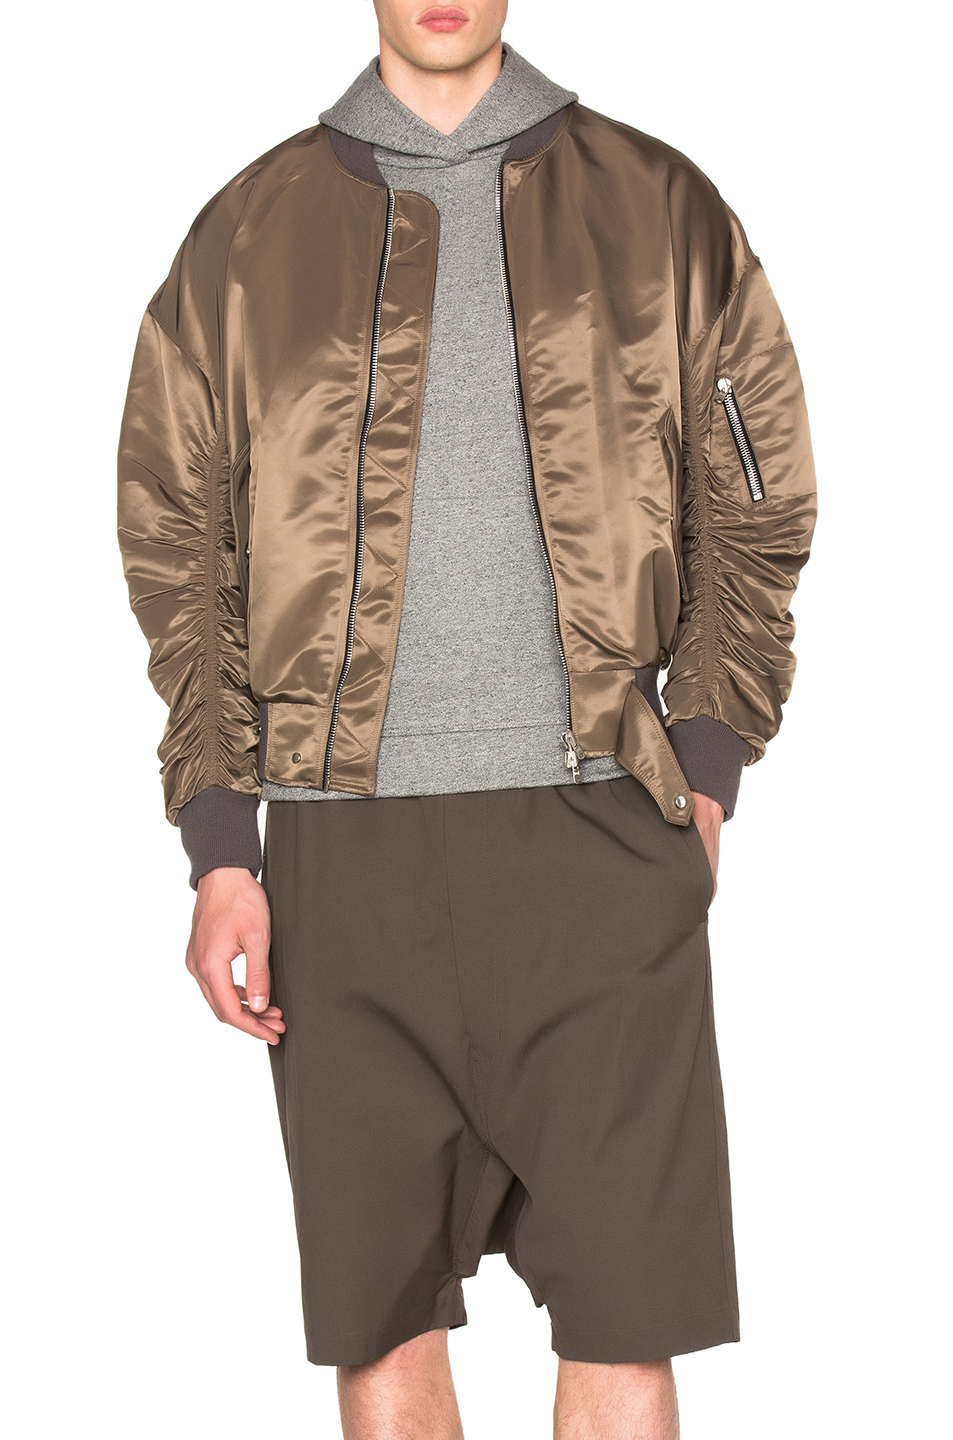 Fear of God Nylon Bomber Jacket in Brown